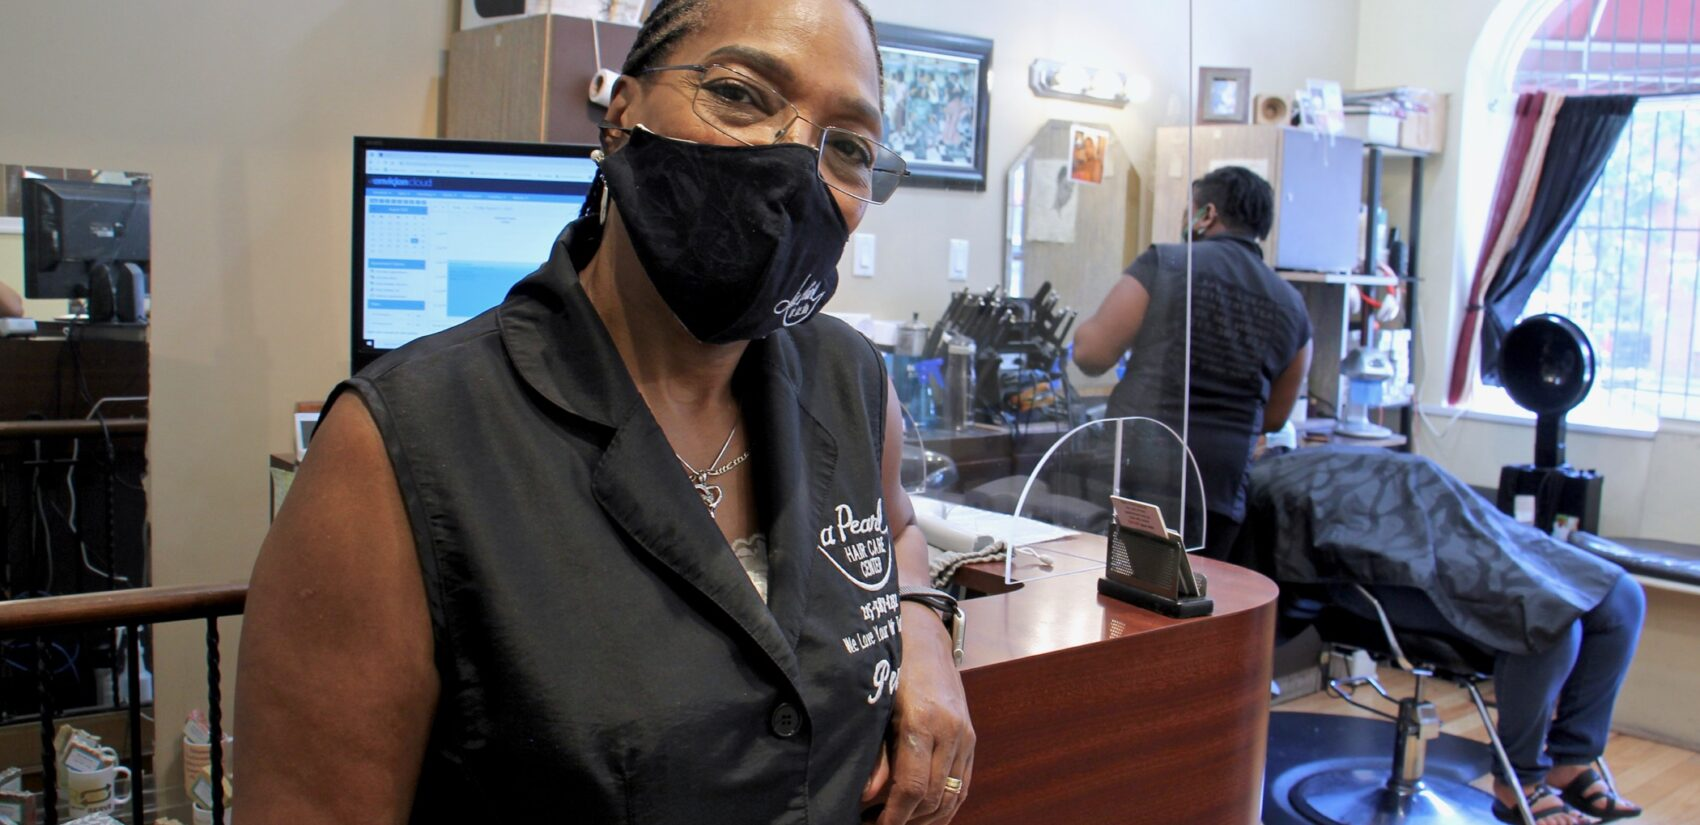 Pearl Bailey-Anderson owns La Pearl Beauty Emporium on Lancaster Avenue. (Emma Lee/WHYY)